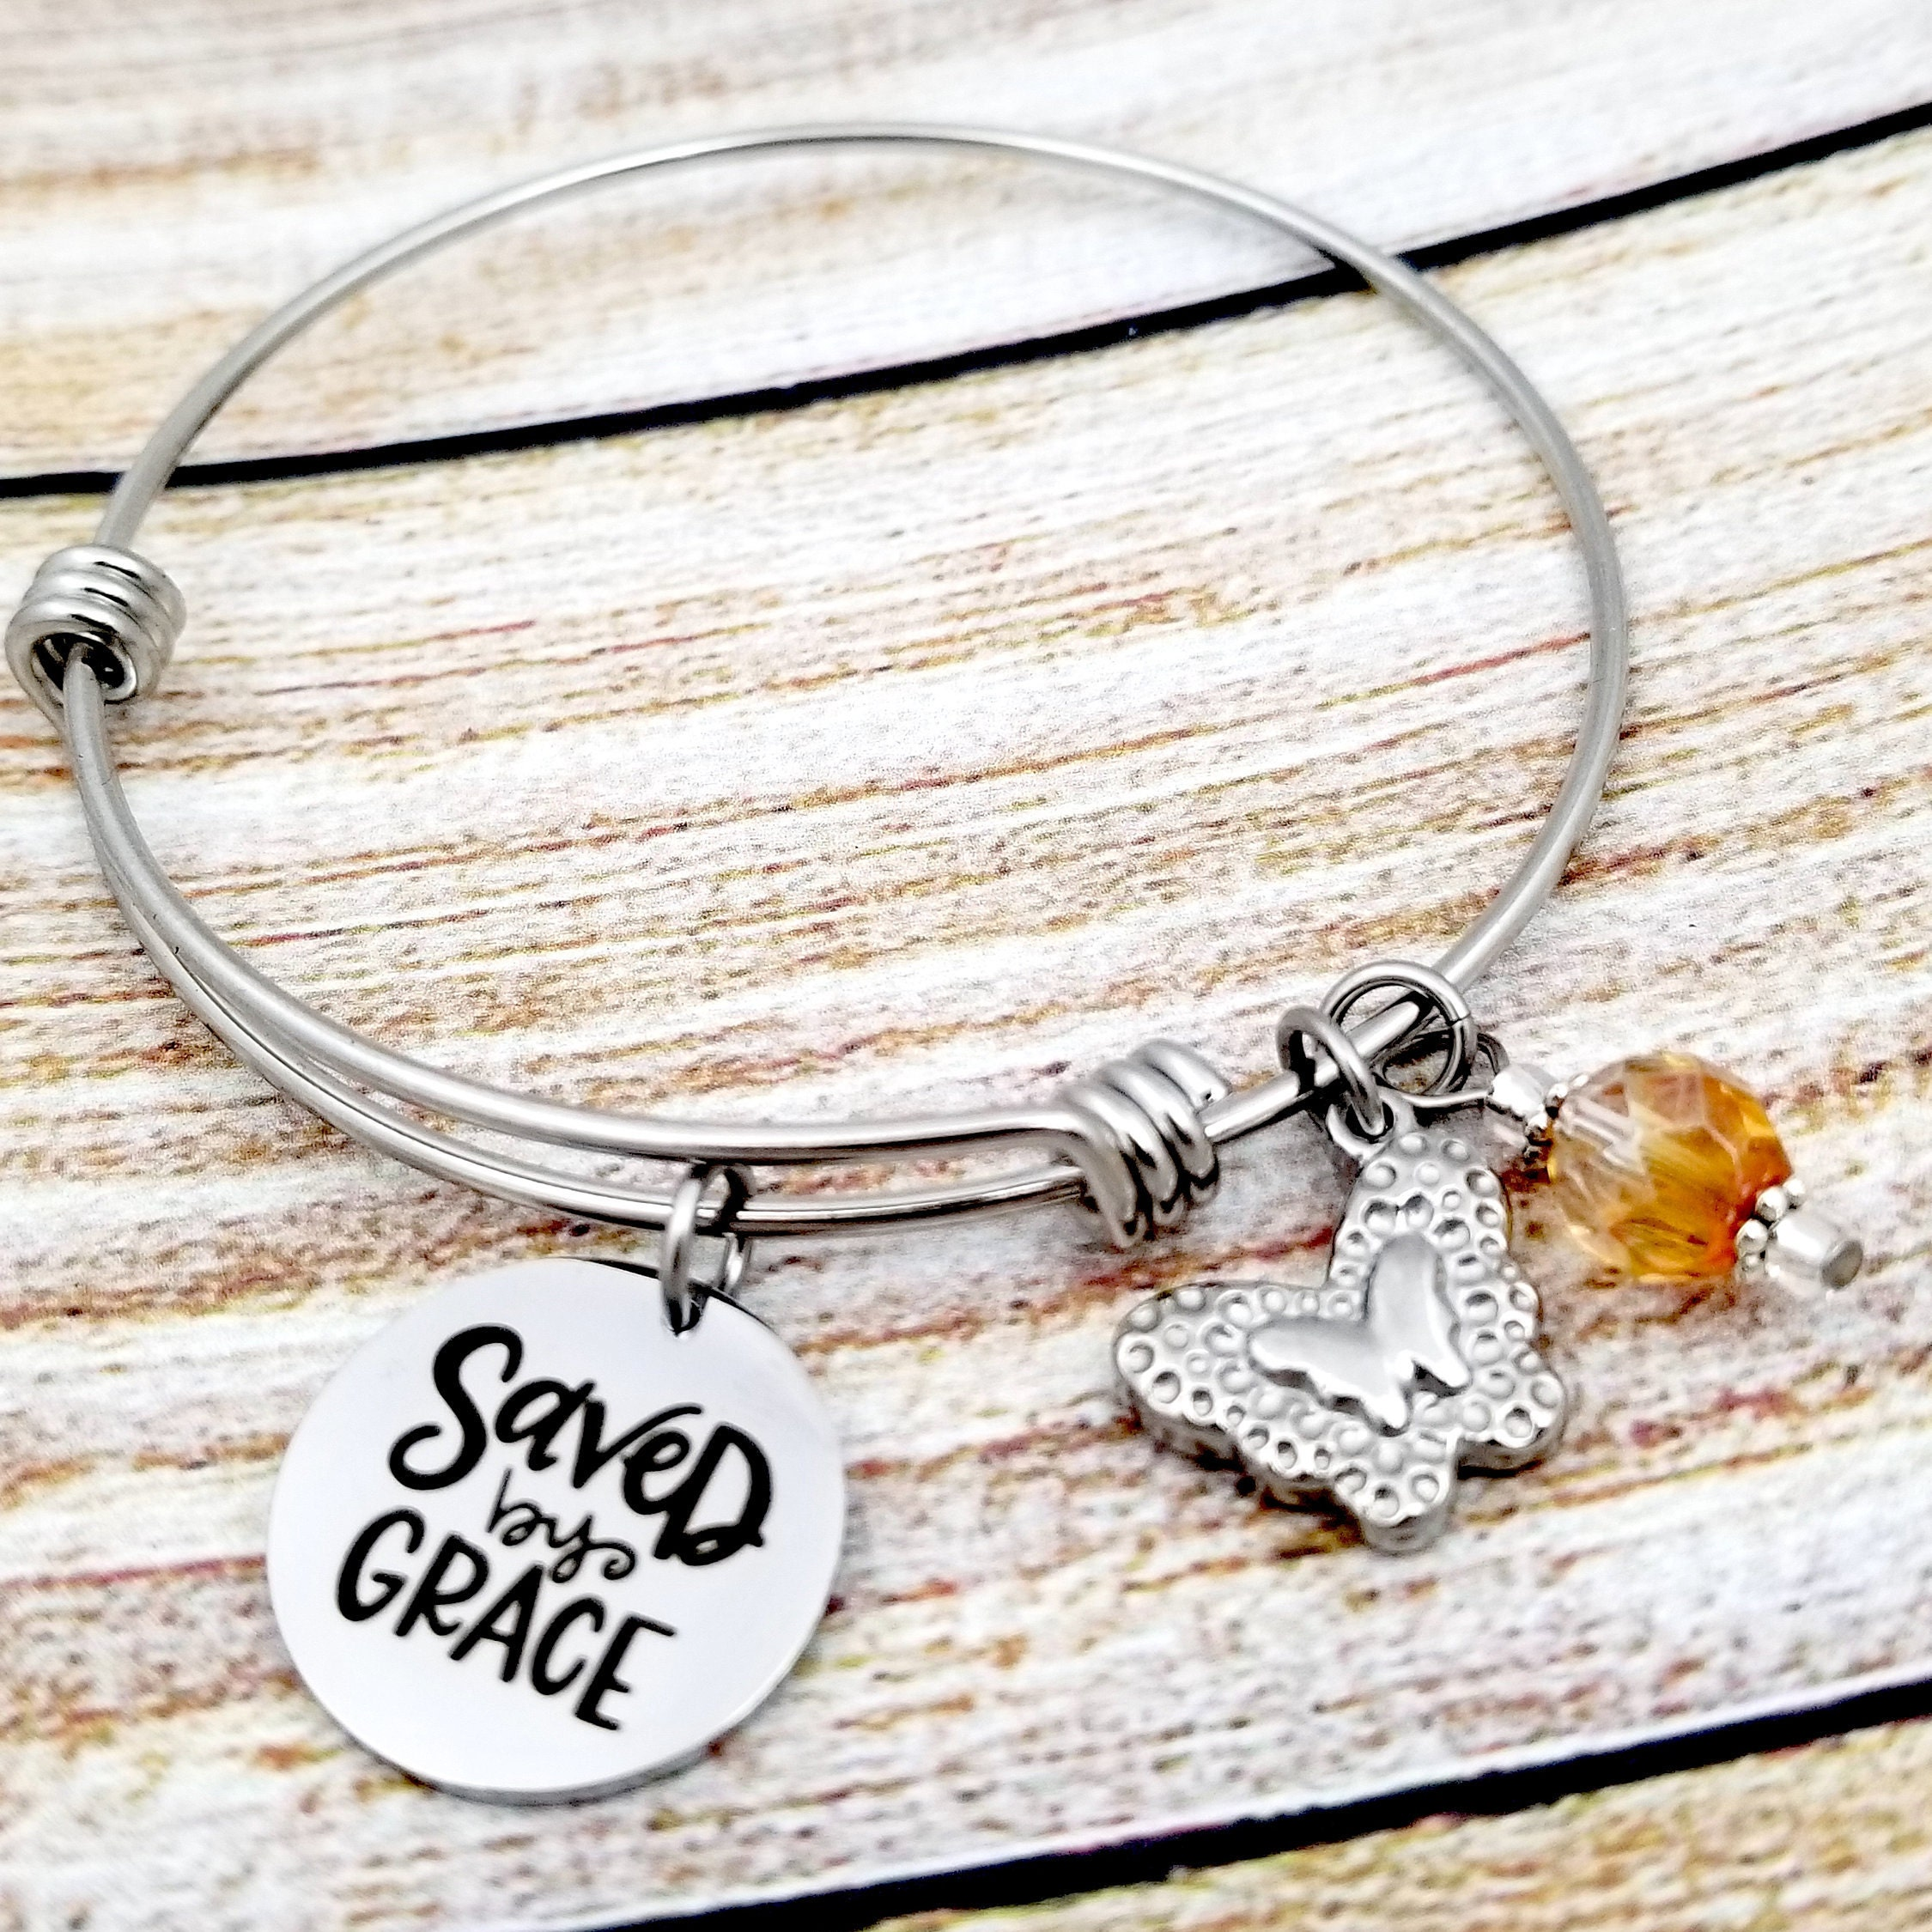 birthday family charms message bracelet gift il christianity faith dream church love inspirational p hope forever believe word fullxfull inspire mother